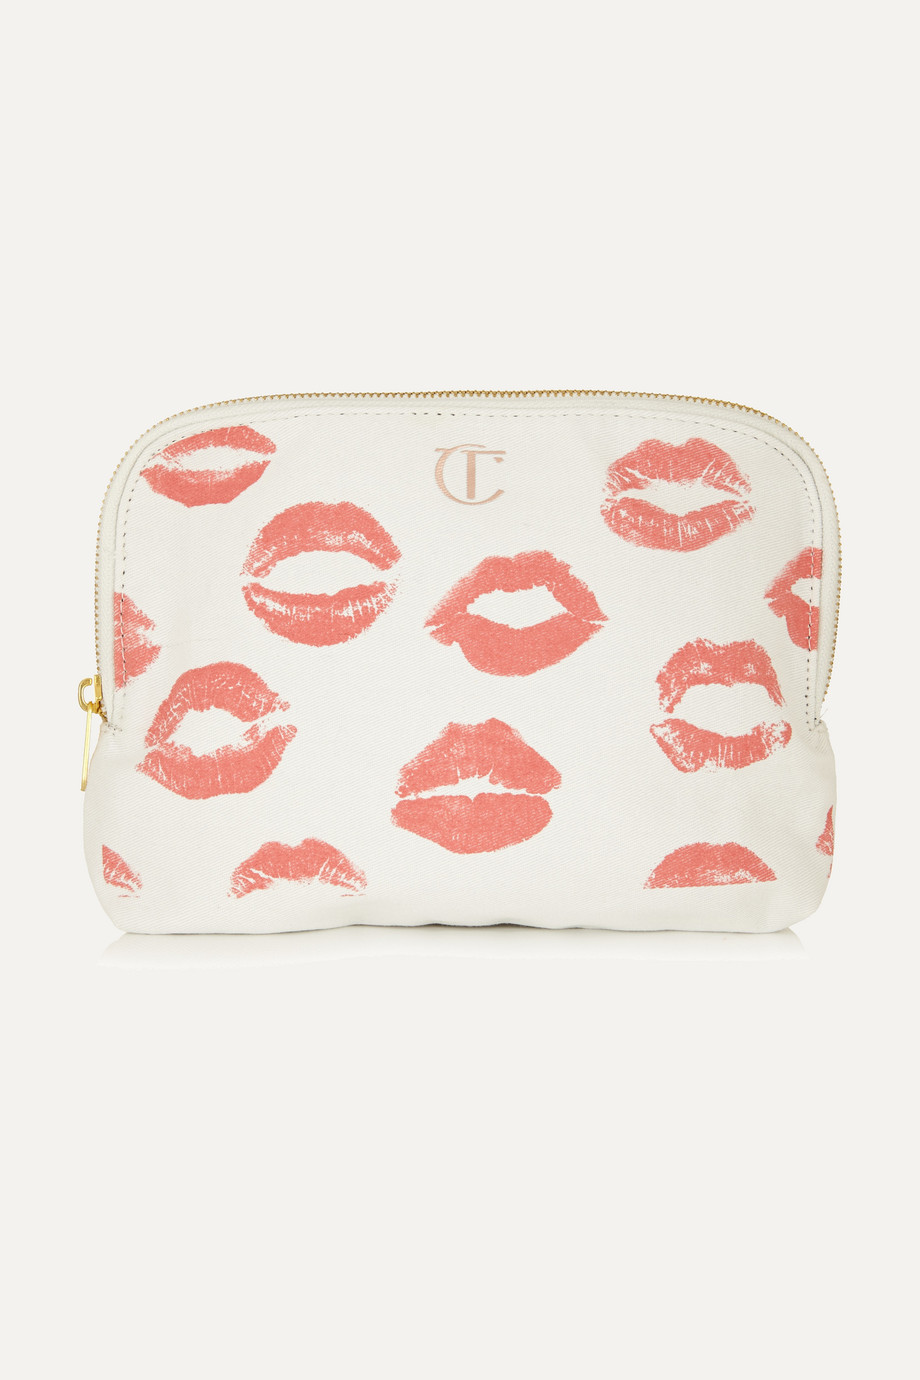 Charlotte Tilbury Printed cotton-canvas cosmetics case